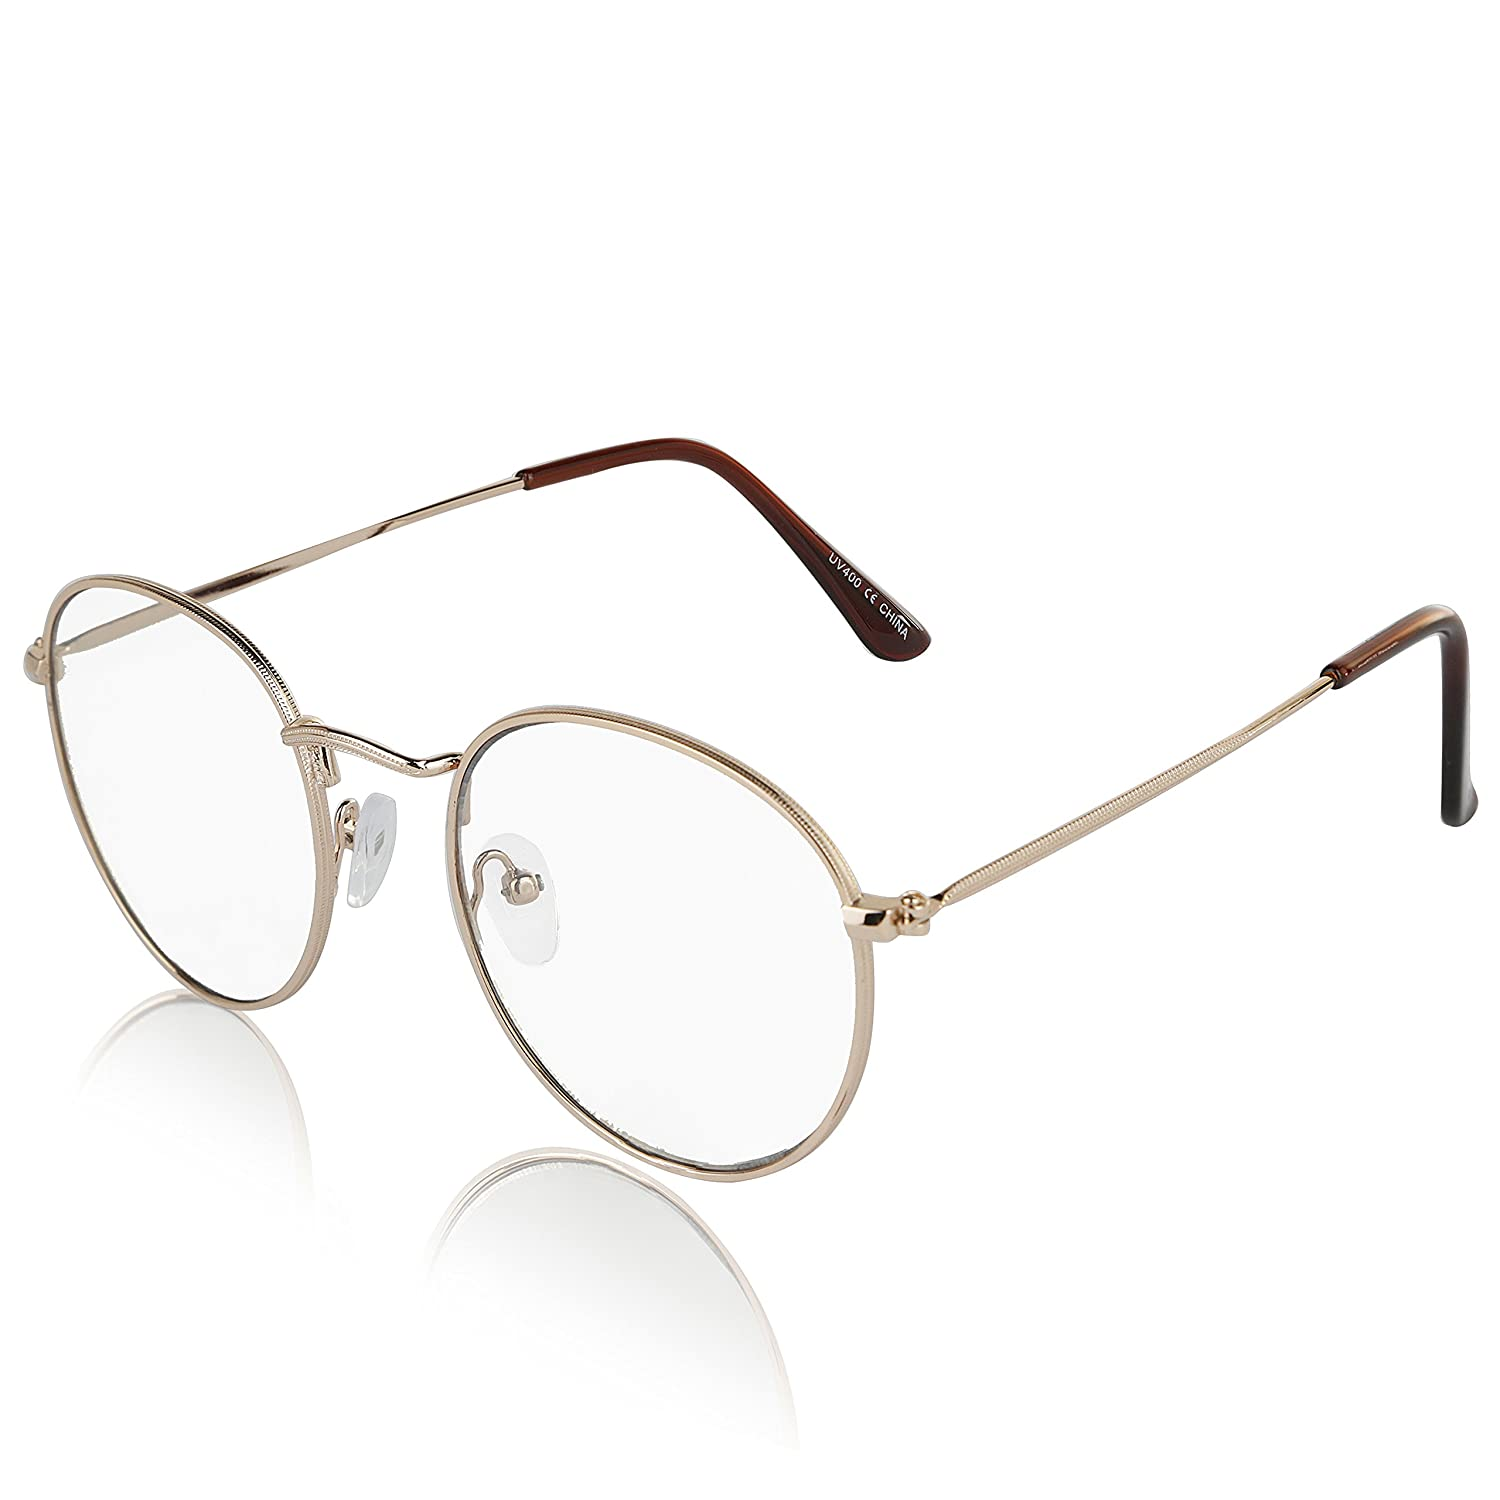 f7a2789d30 Amazon.com  Non Prescription Retro Fake Clear Lens Gold Metal Frame  Eyeglasses Woman UV400  Clothing